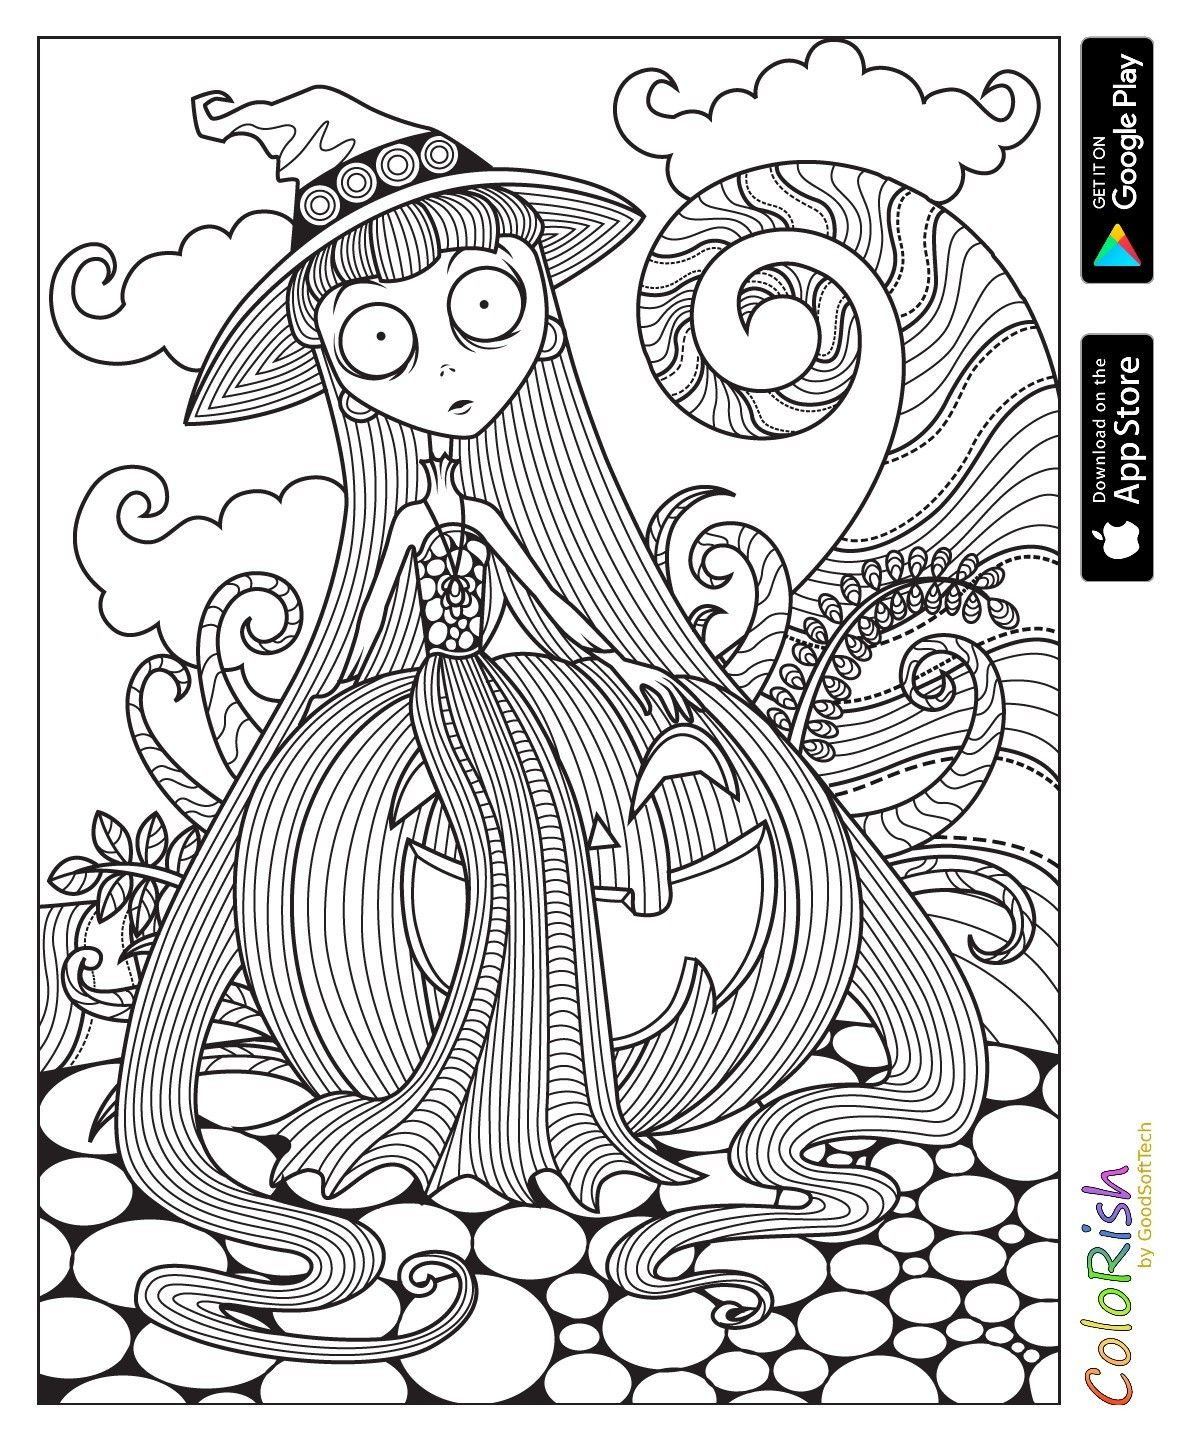 Pin By Yvette Plunkett On Coloring Book | Coloring Books